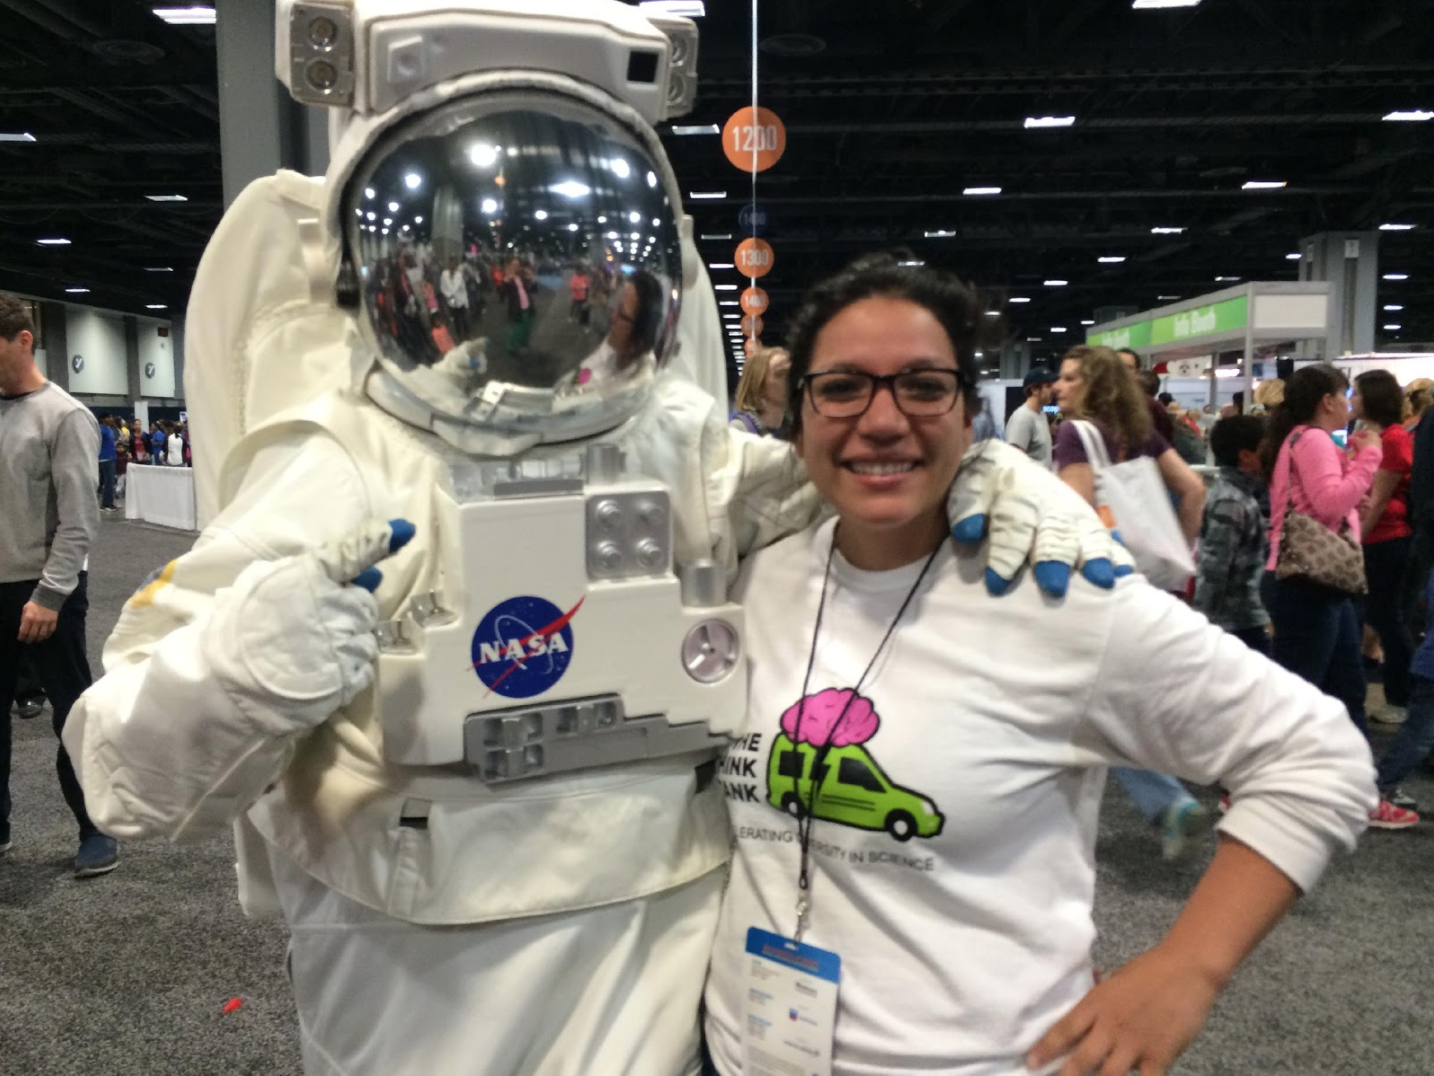 Our team joined about 3,000 presenters from all over the US. NASA sent this guy.